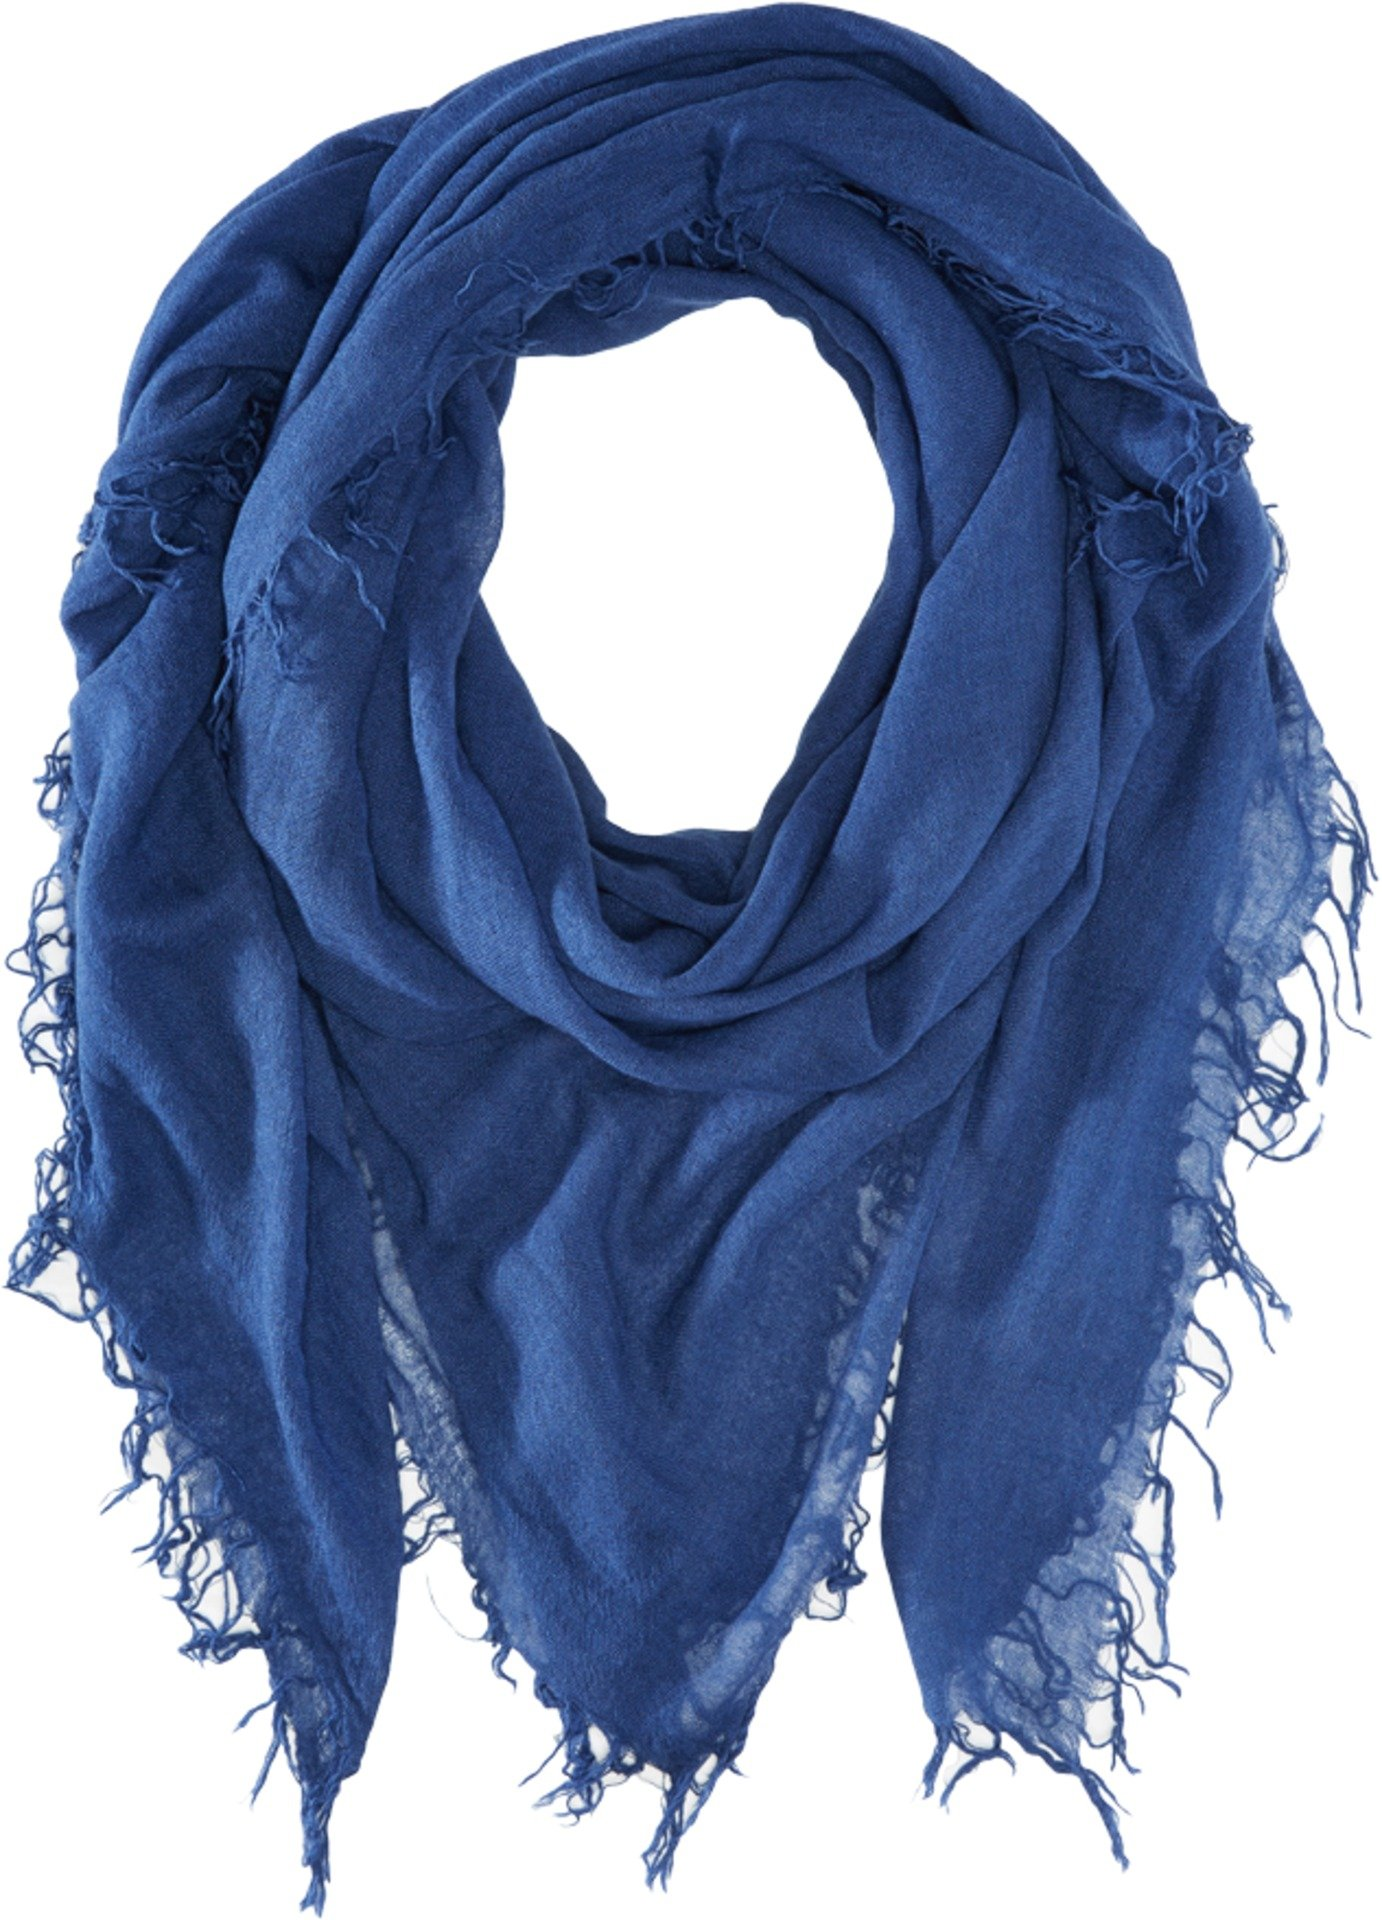 Chan Luu Women's Cashmere and Silk Scarf Medieval Blue One Size by Chan Luu